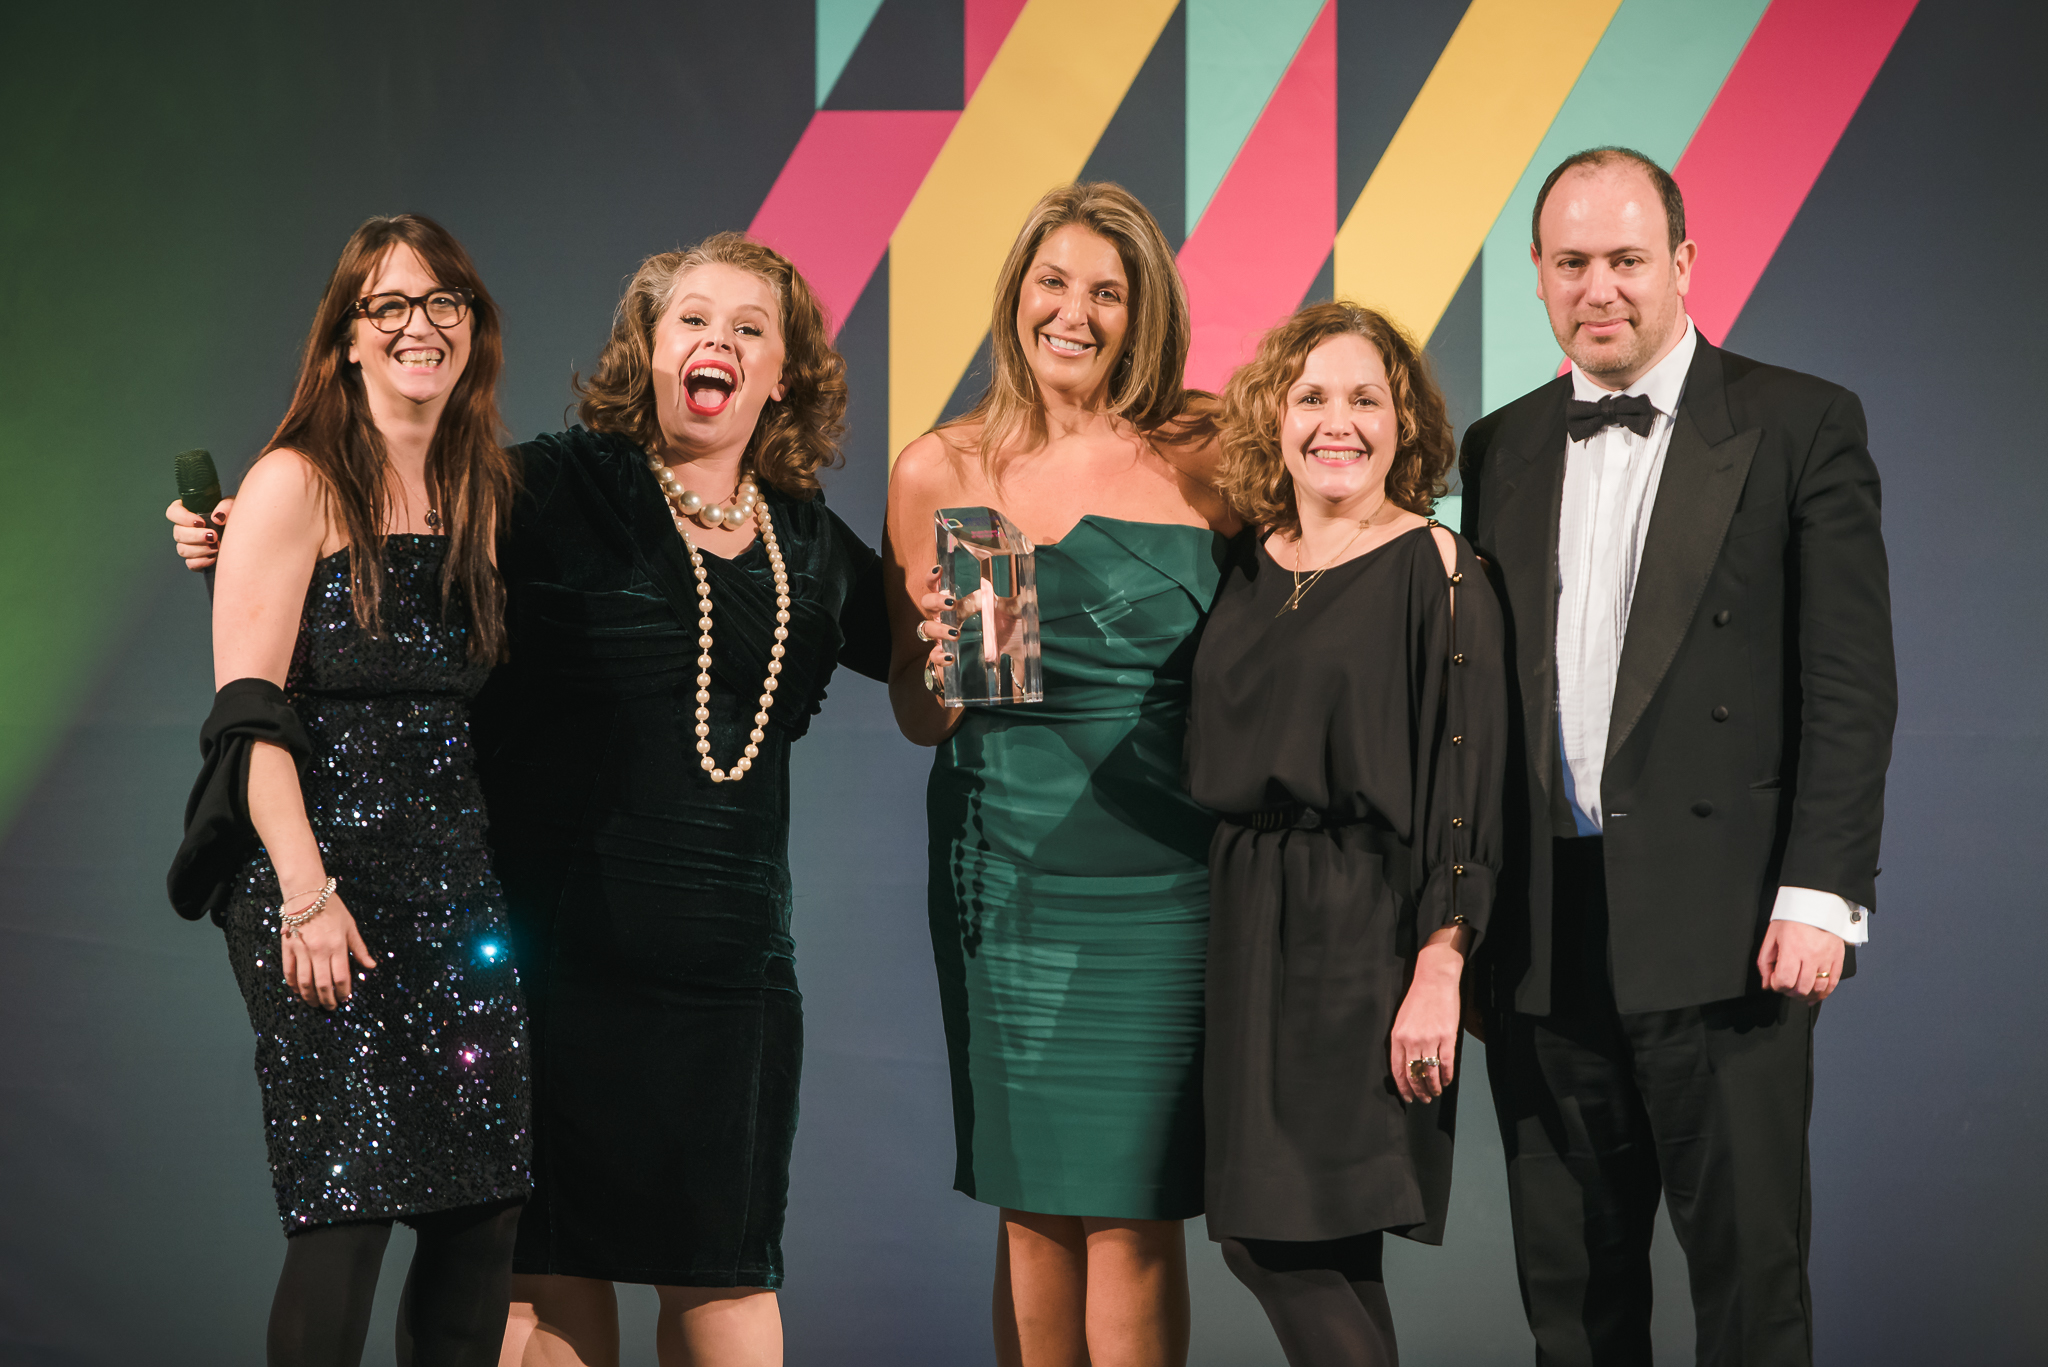 Brave Brand of the Year winners, Cancer Research UK